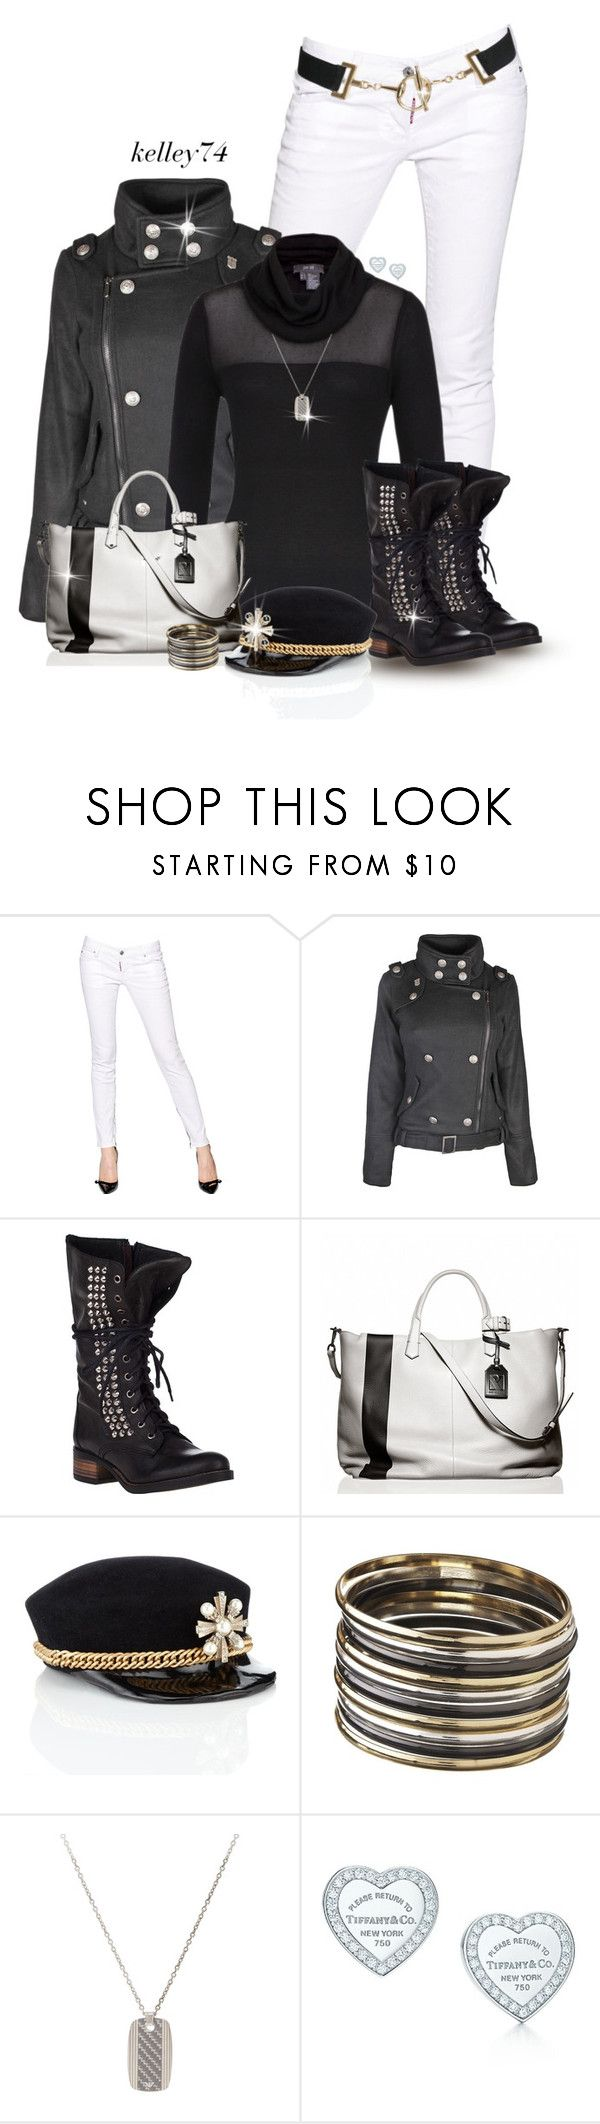 """White Jeans, Black Boots"" by kelley74 ❤ liked on Polyvore featuring Dsquared2, Per Se, Steve Madden, Reed Krakoff, Laura Cathcart, Emporio Armani and Tiffany & Co."